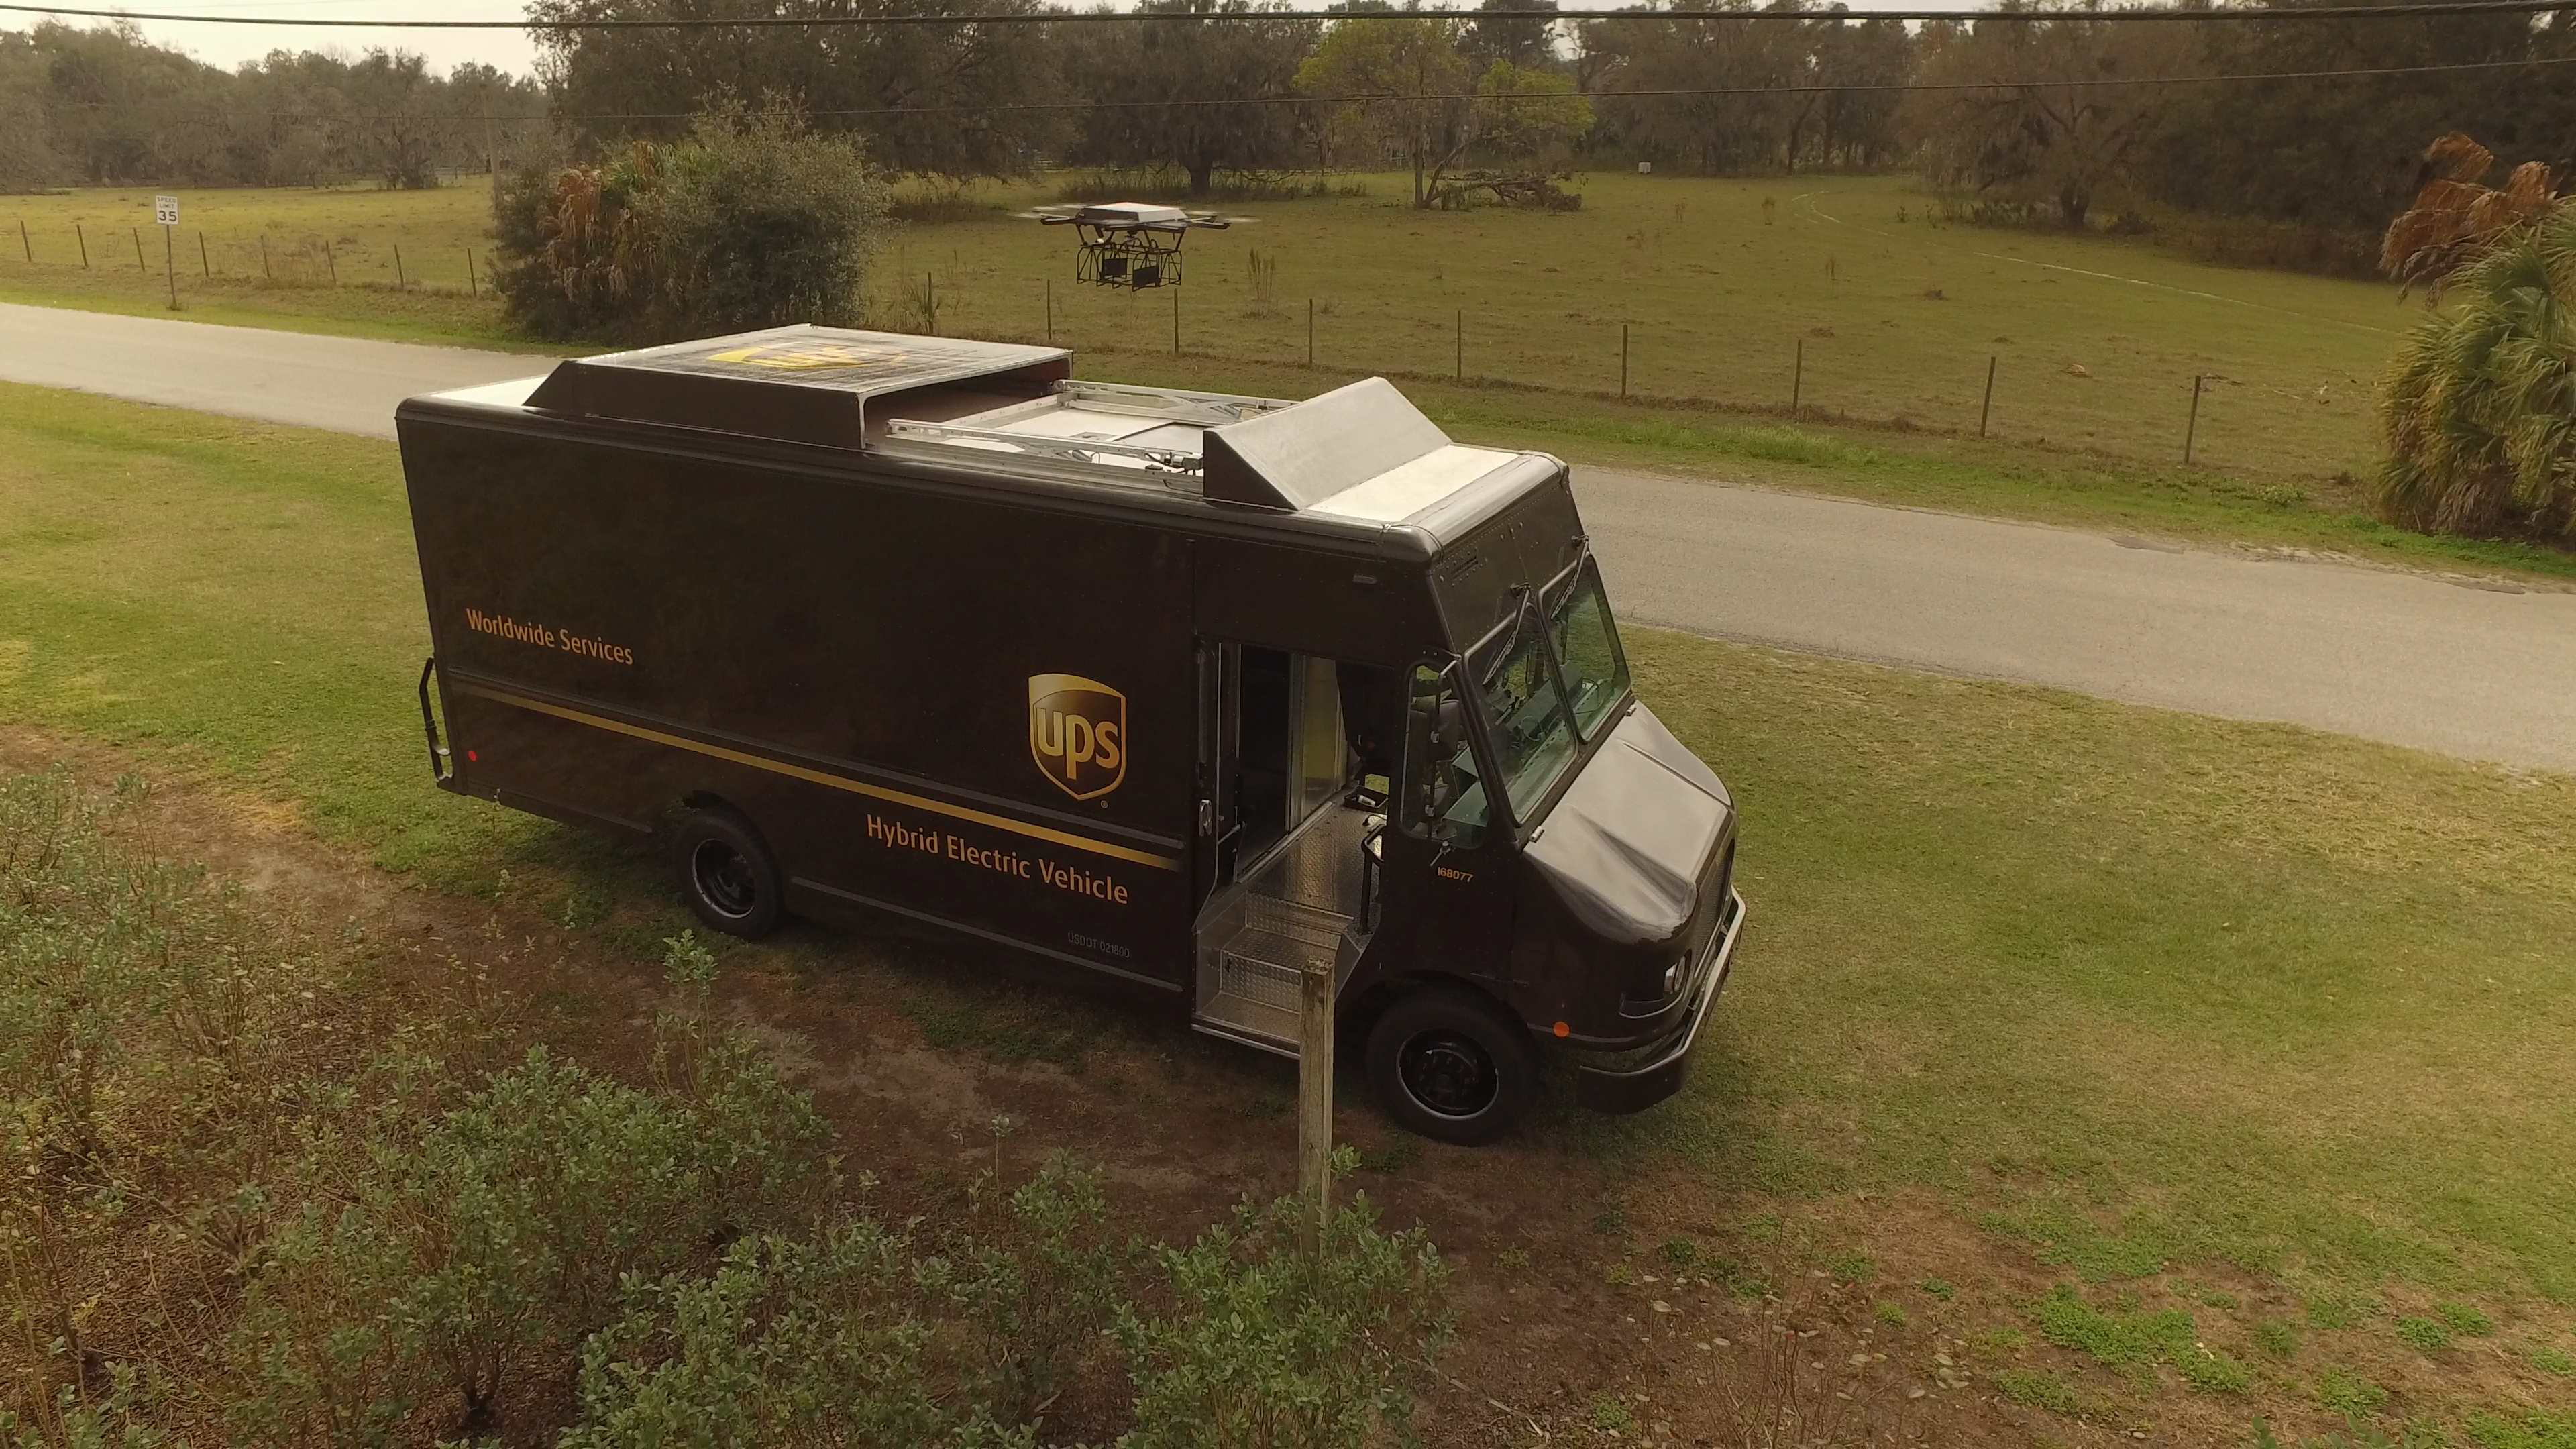 UPS successfully tested a drone from one of its trucks Monday in Florida.